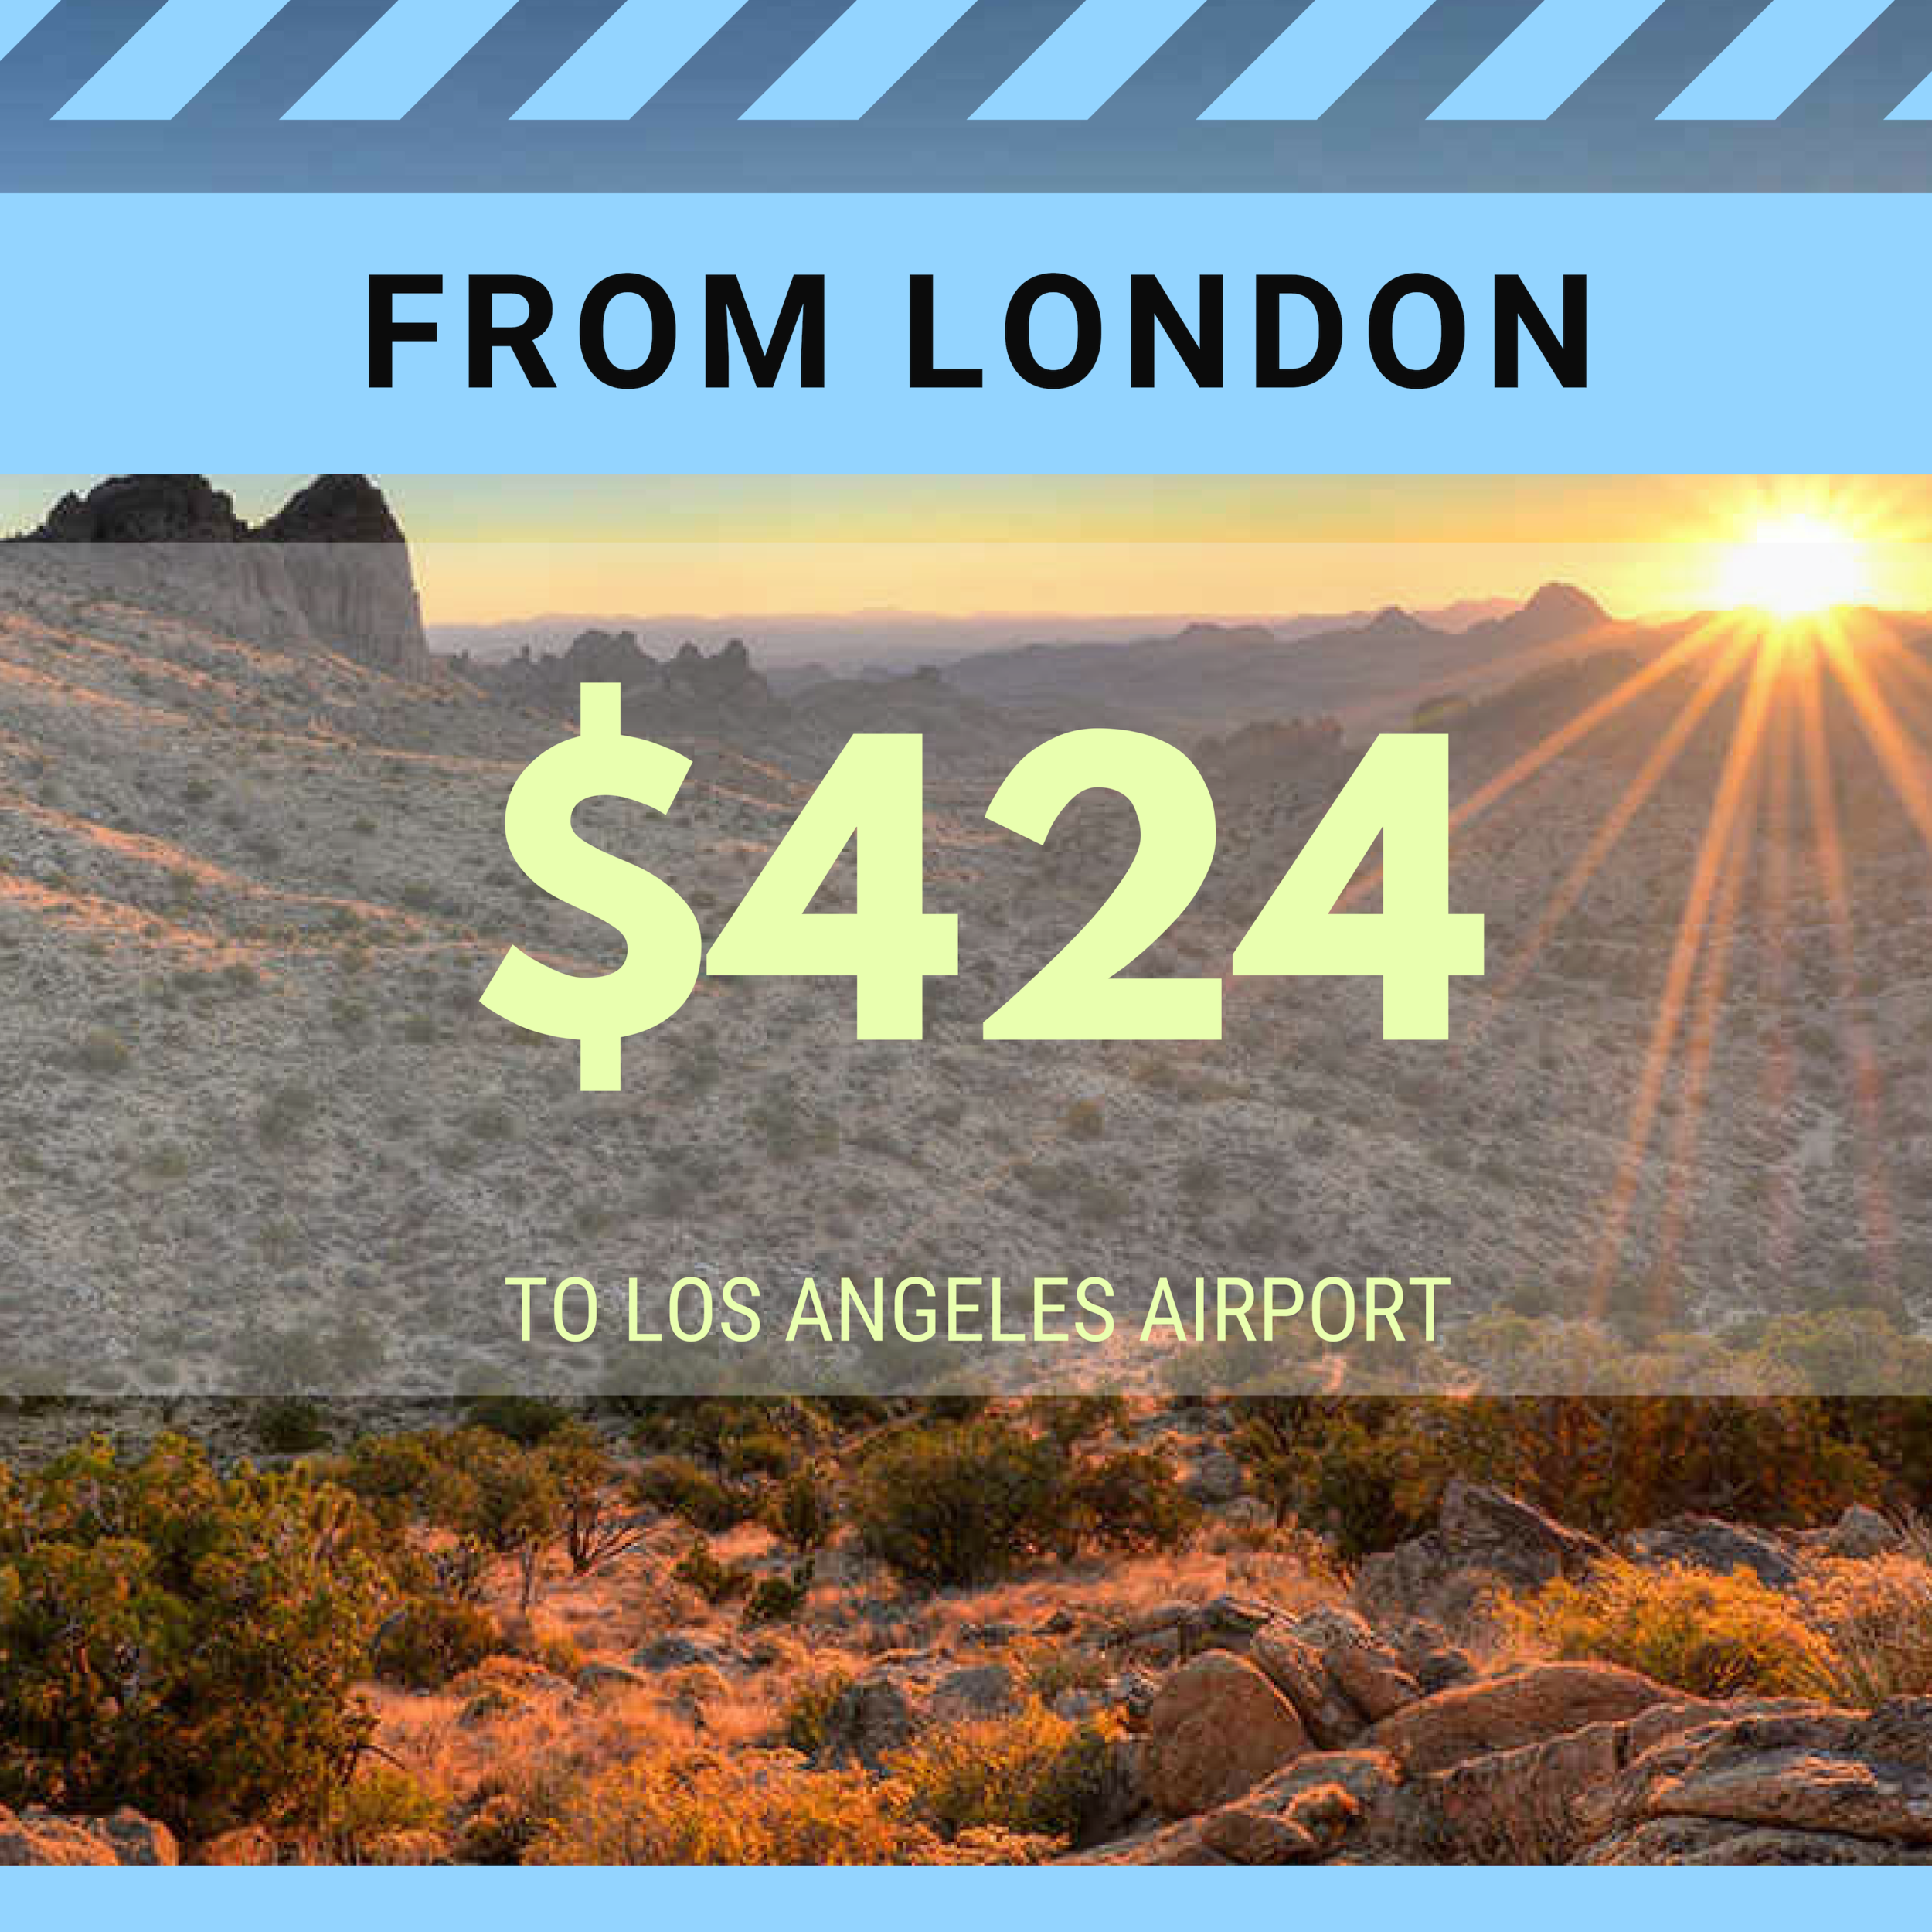 FROM LONDON TO LAX